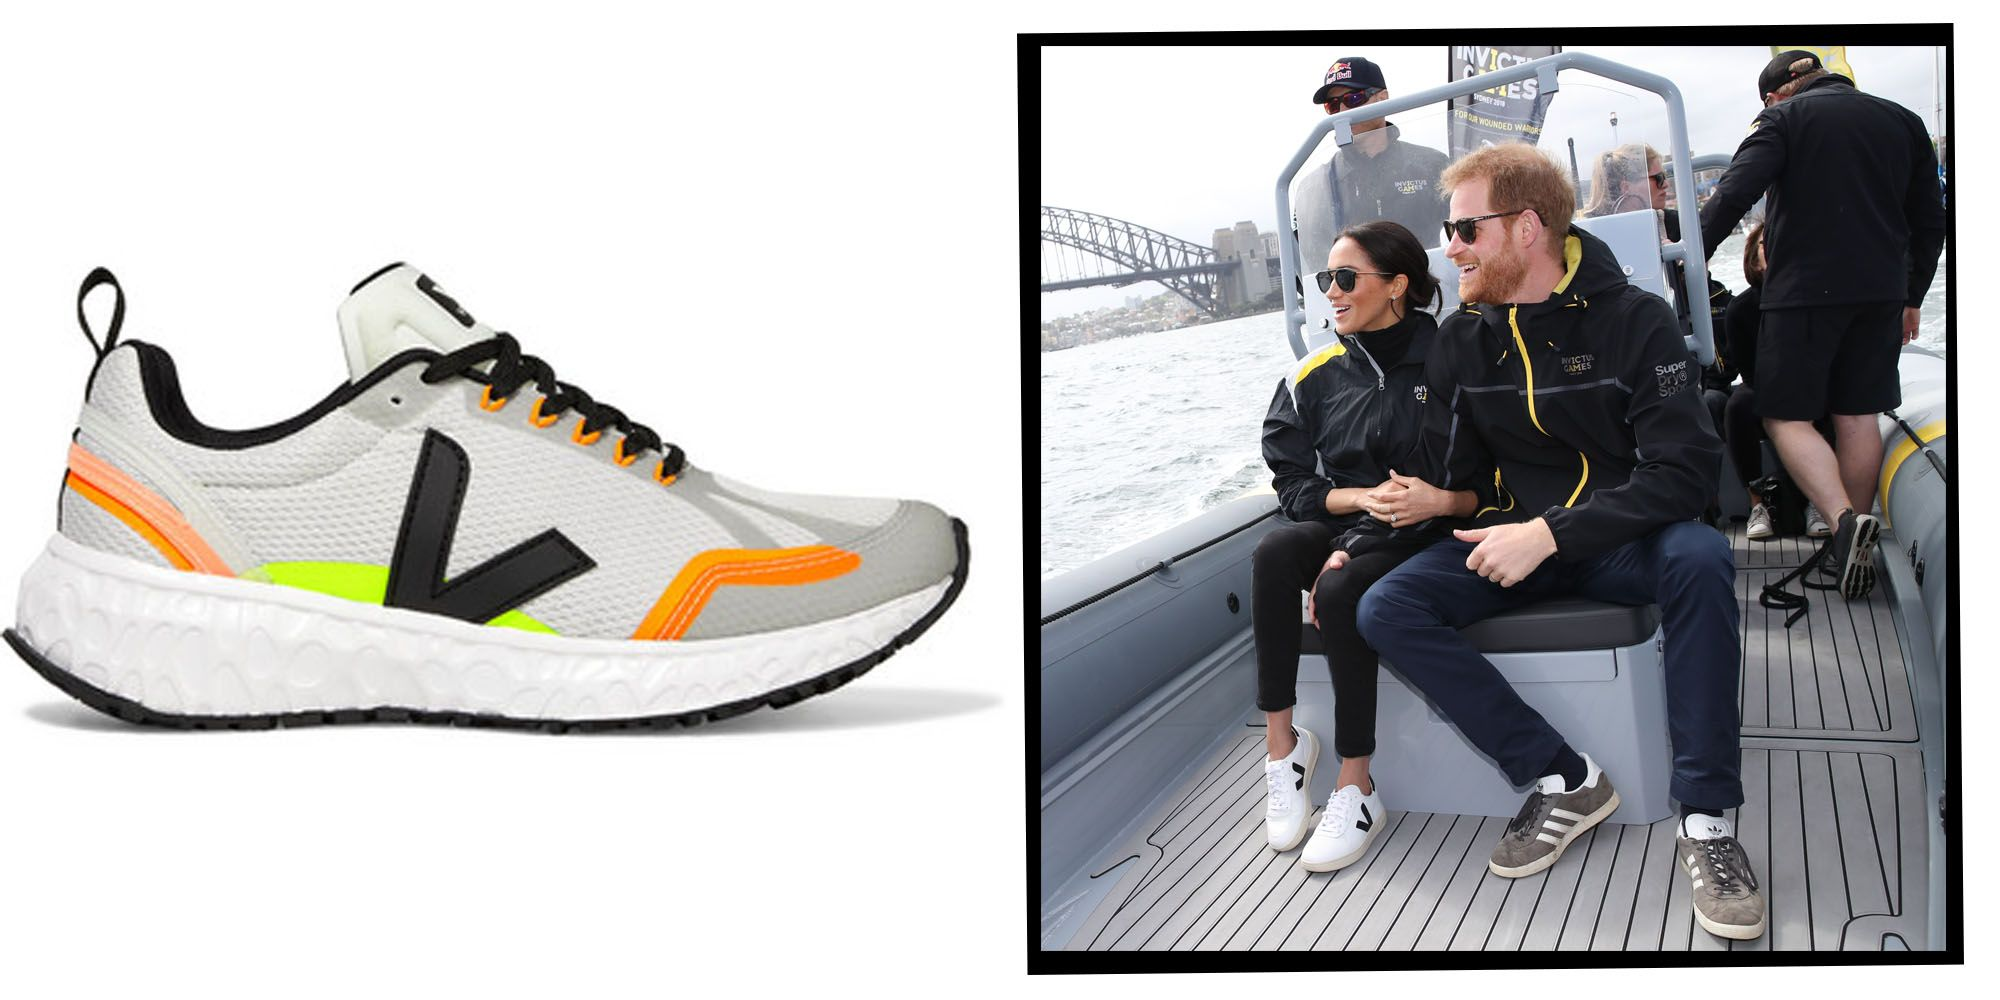 con las manos en la masa Se asemeja artículo  Meghan Markle's Favourite Trainer Brand Veja Launches Its First Sustainable  Running Shoe